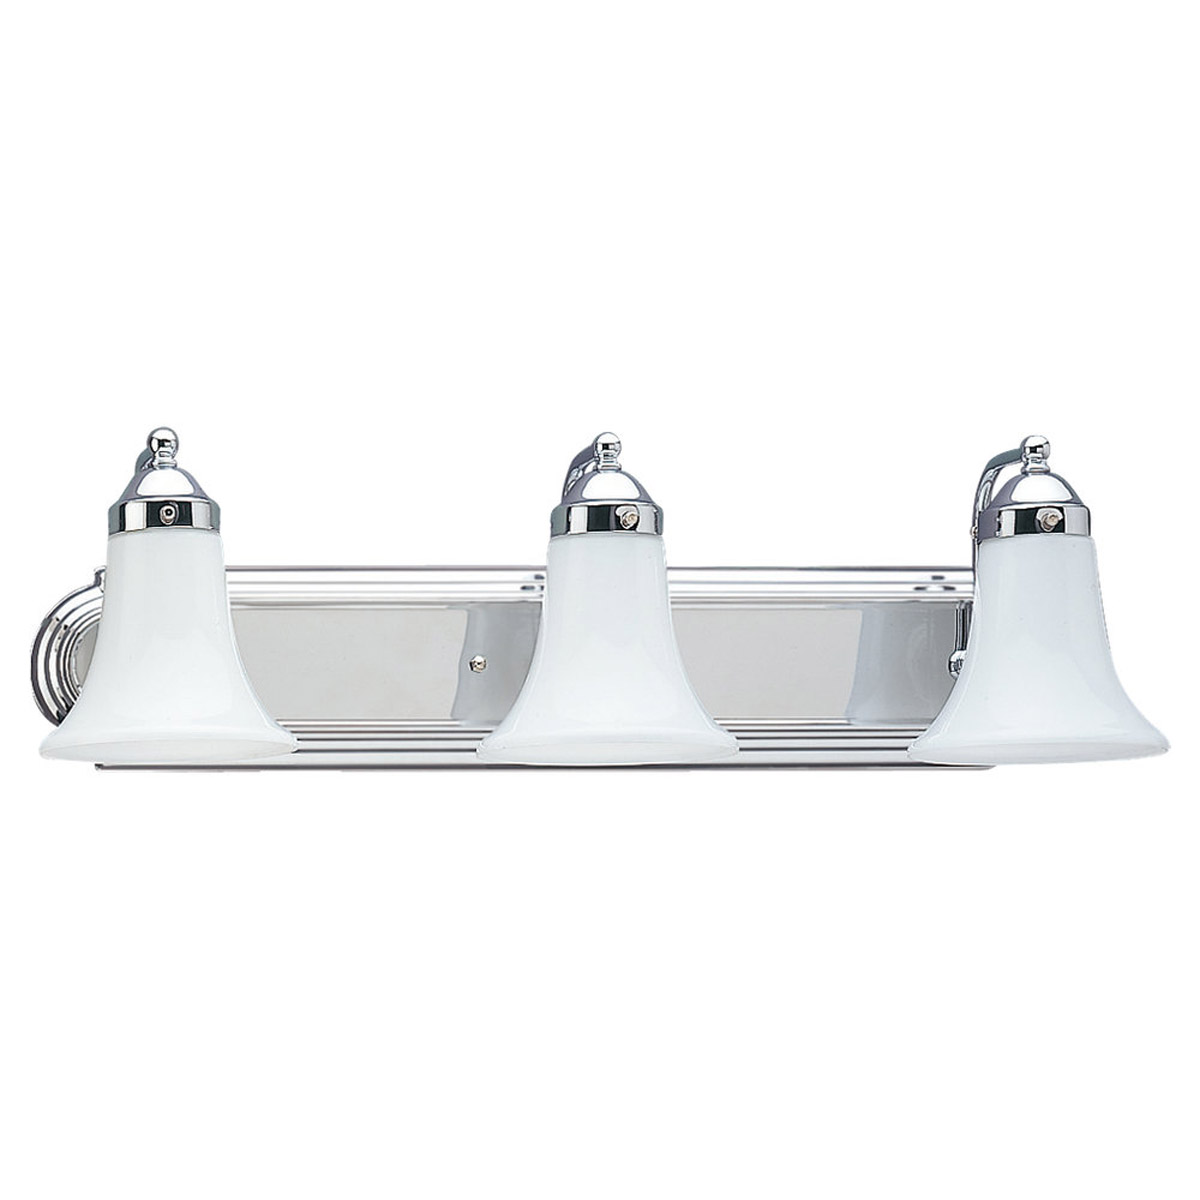 Sea Gull Lighting Astoria 3 Light Bath Vanity in Chrome 4859-05 photo